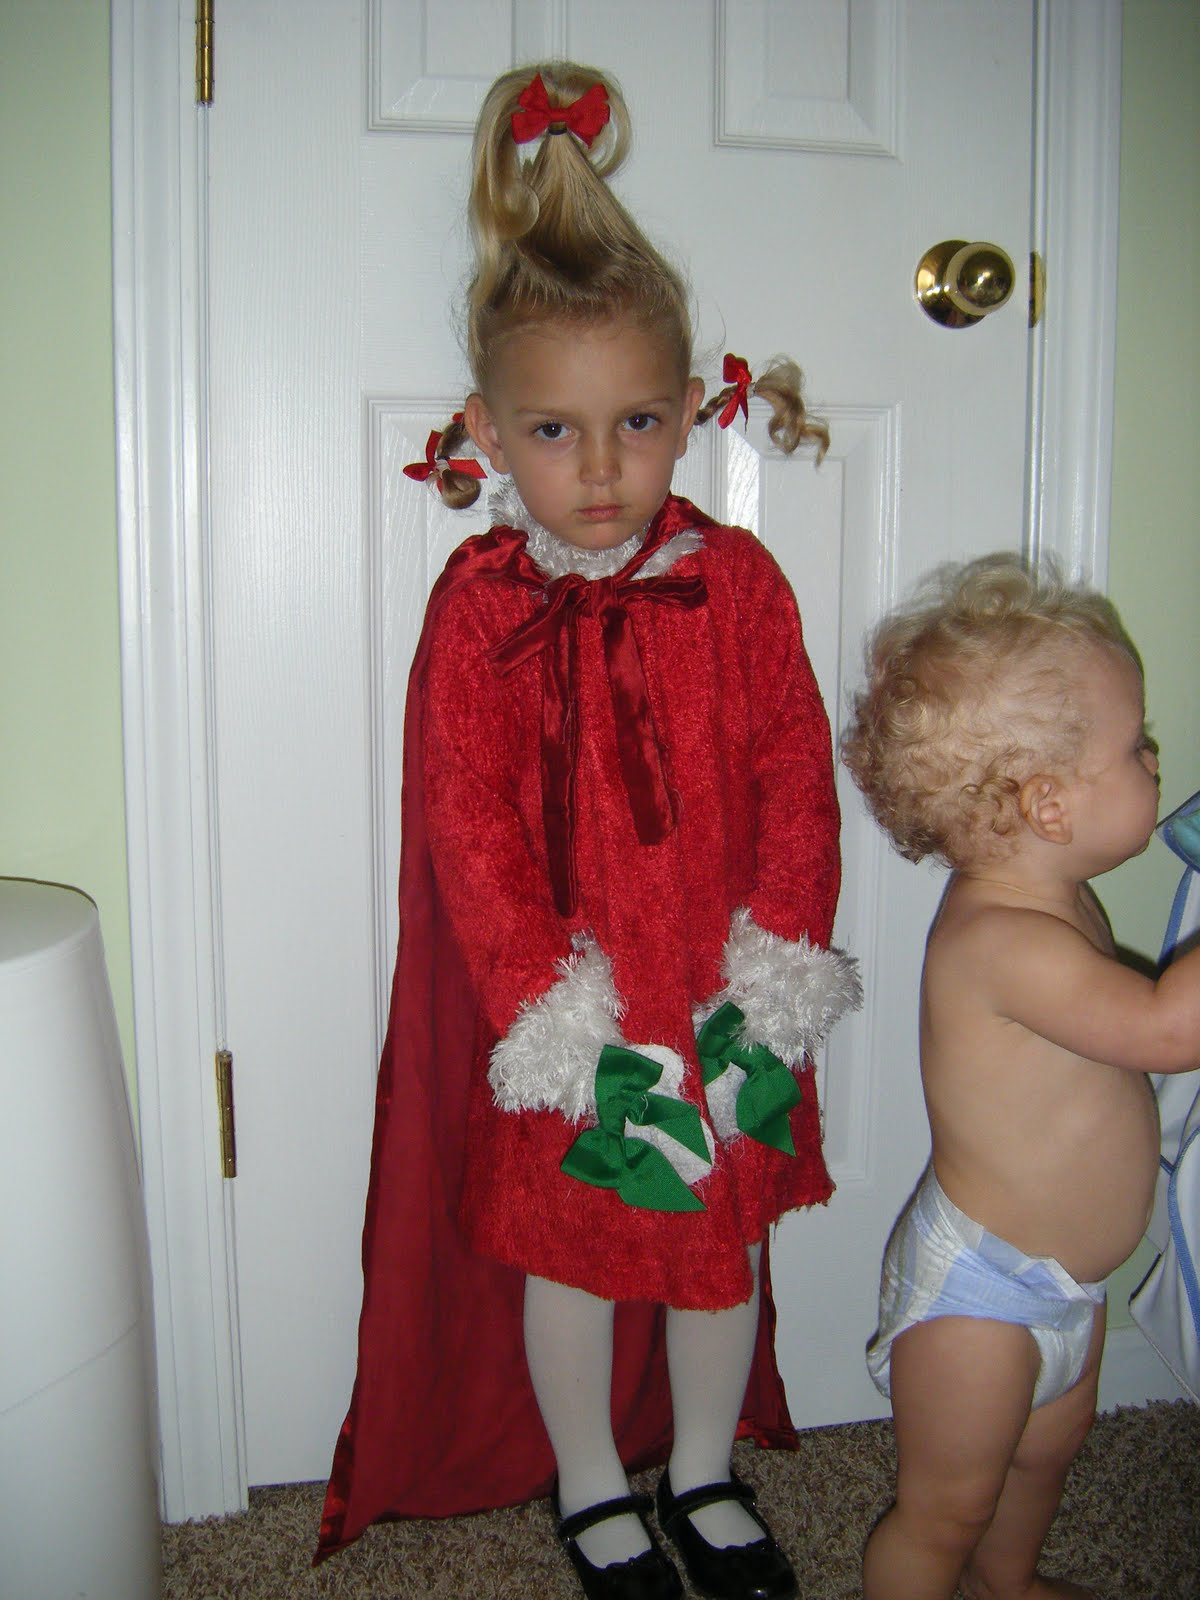 sc 1 st  The Eddy Family & The Eddy Family: Whovilleu0027s Cindy Lou Who and Baby Grinch